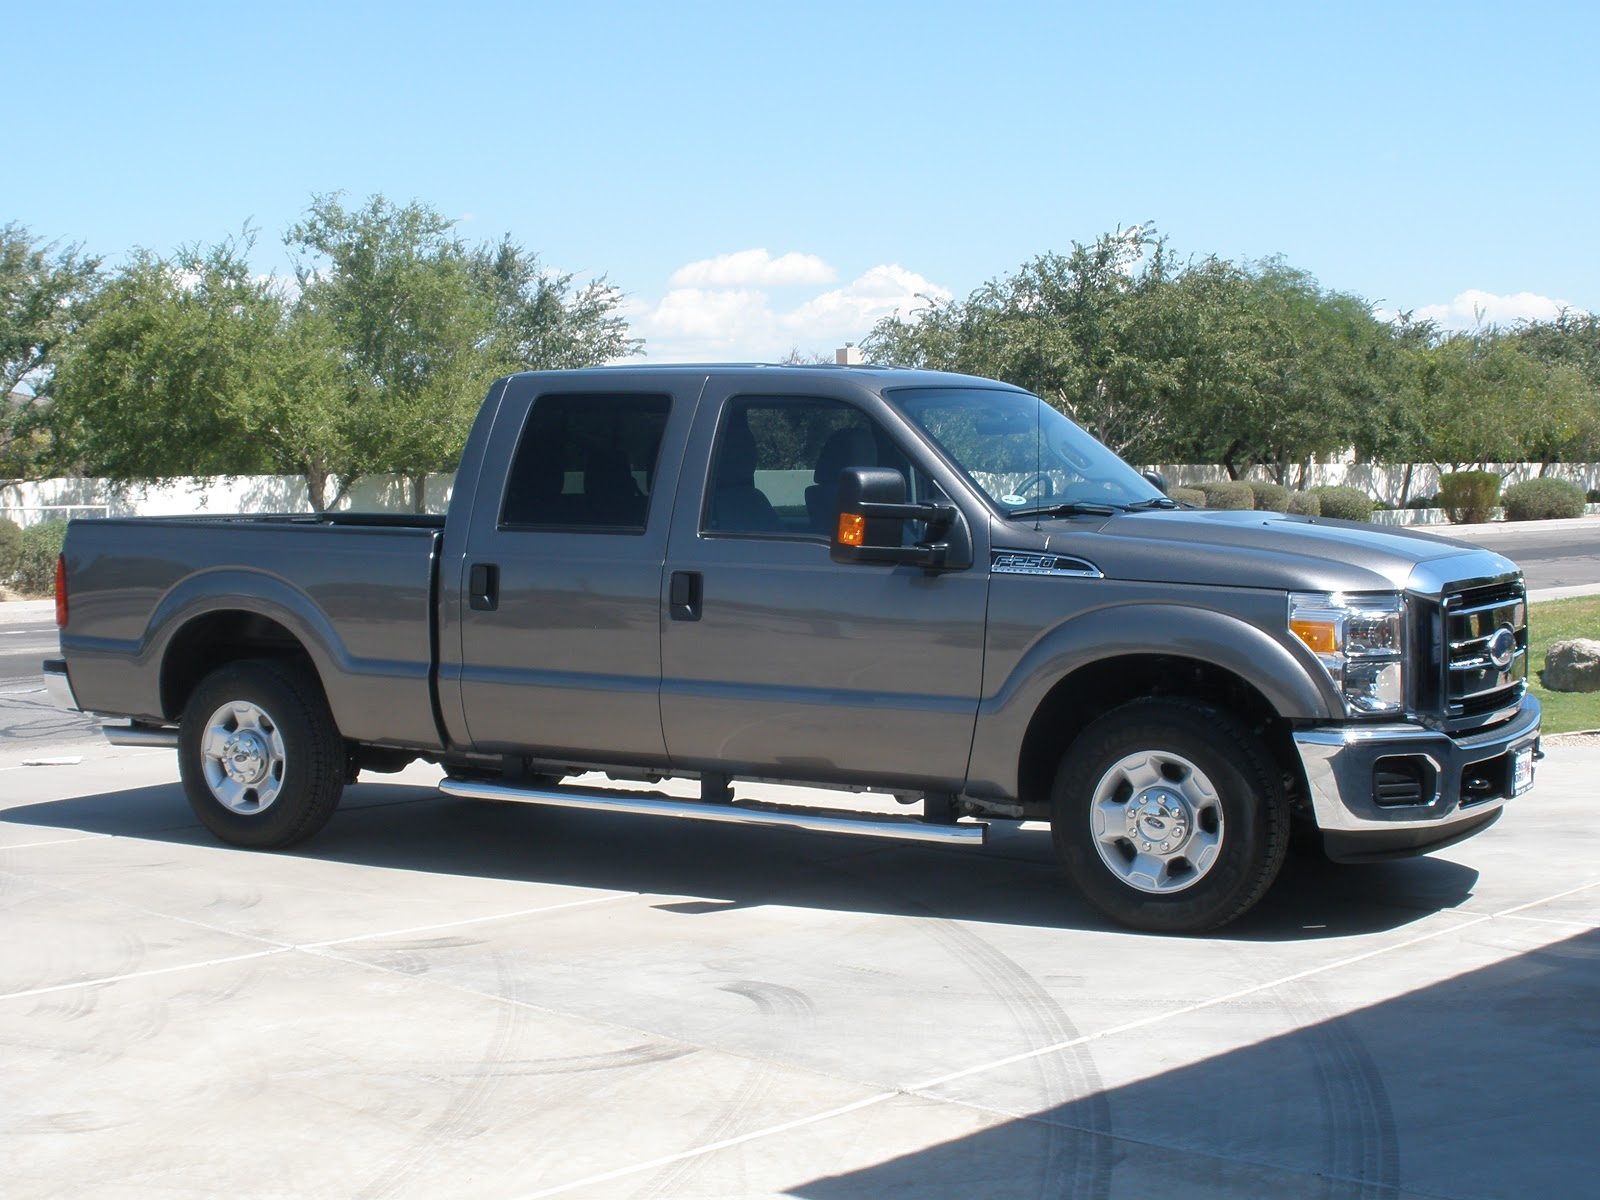 Review of the 2011 Ford F 250 Pickup Truck – Truck Camper Adventure